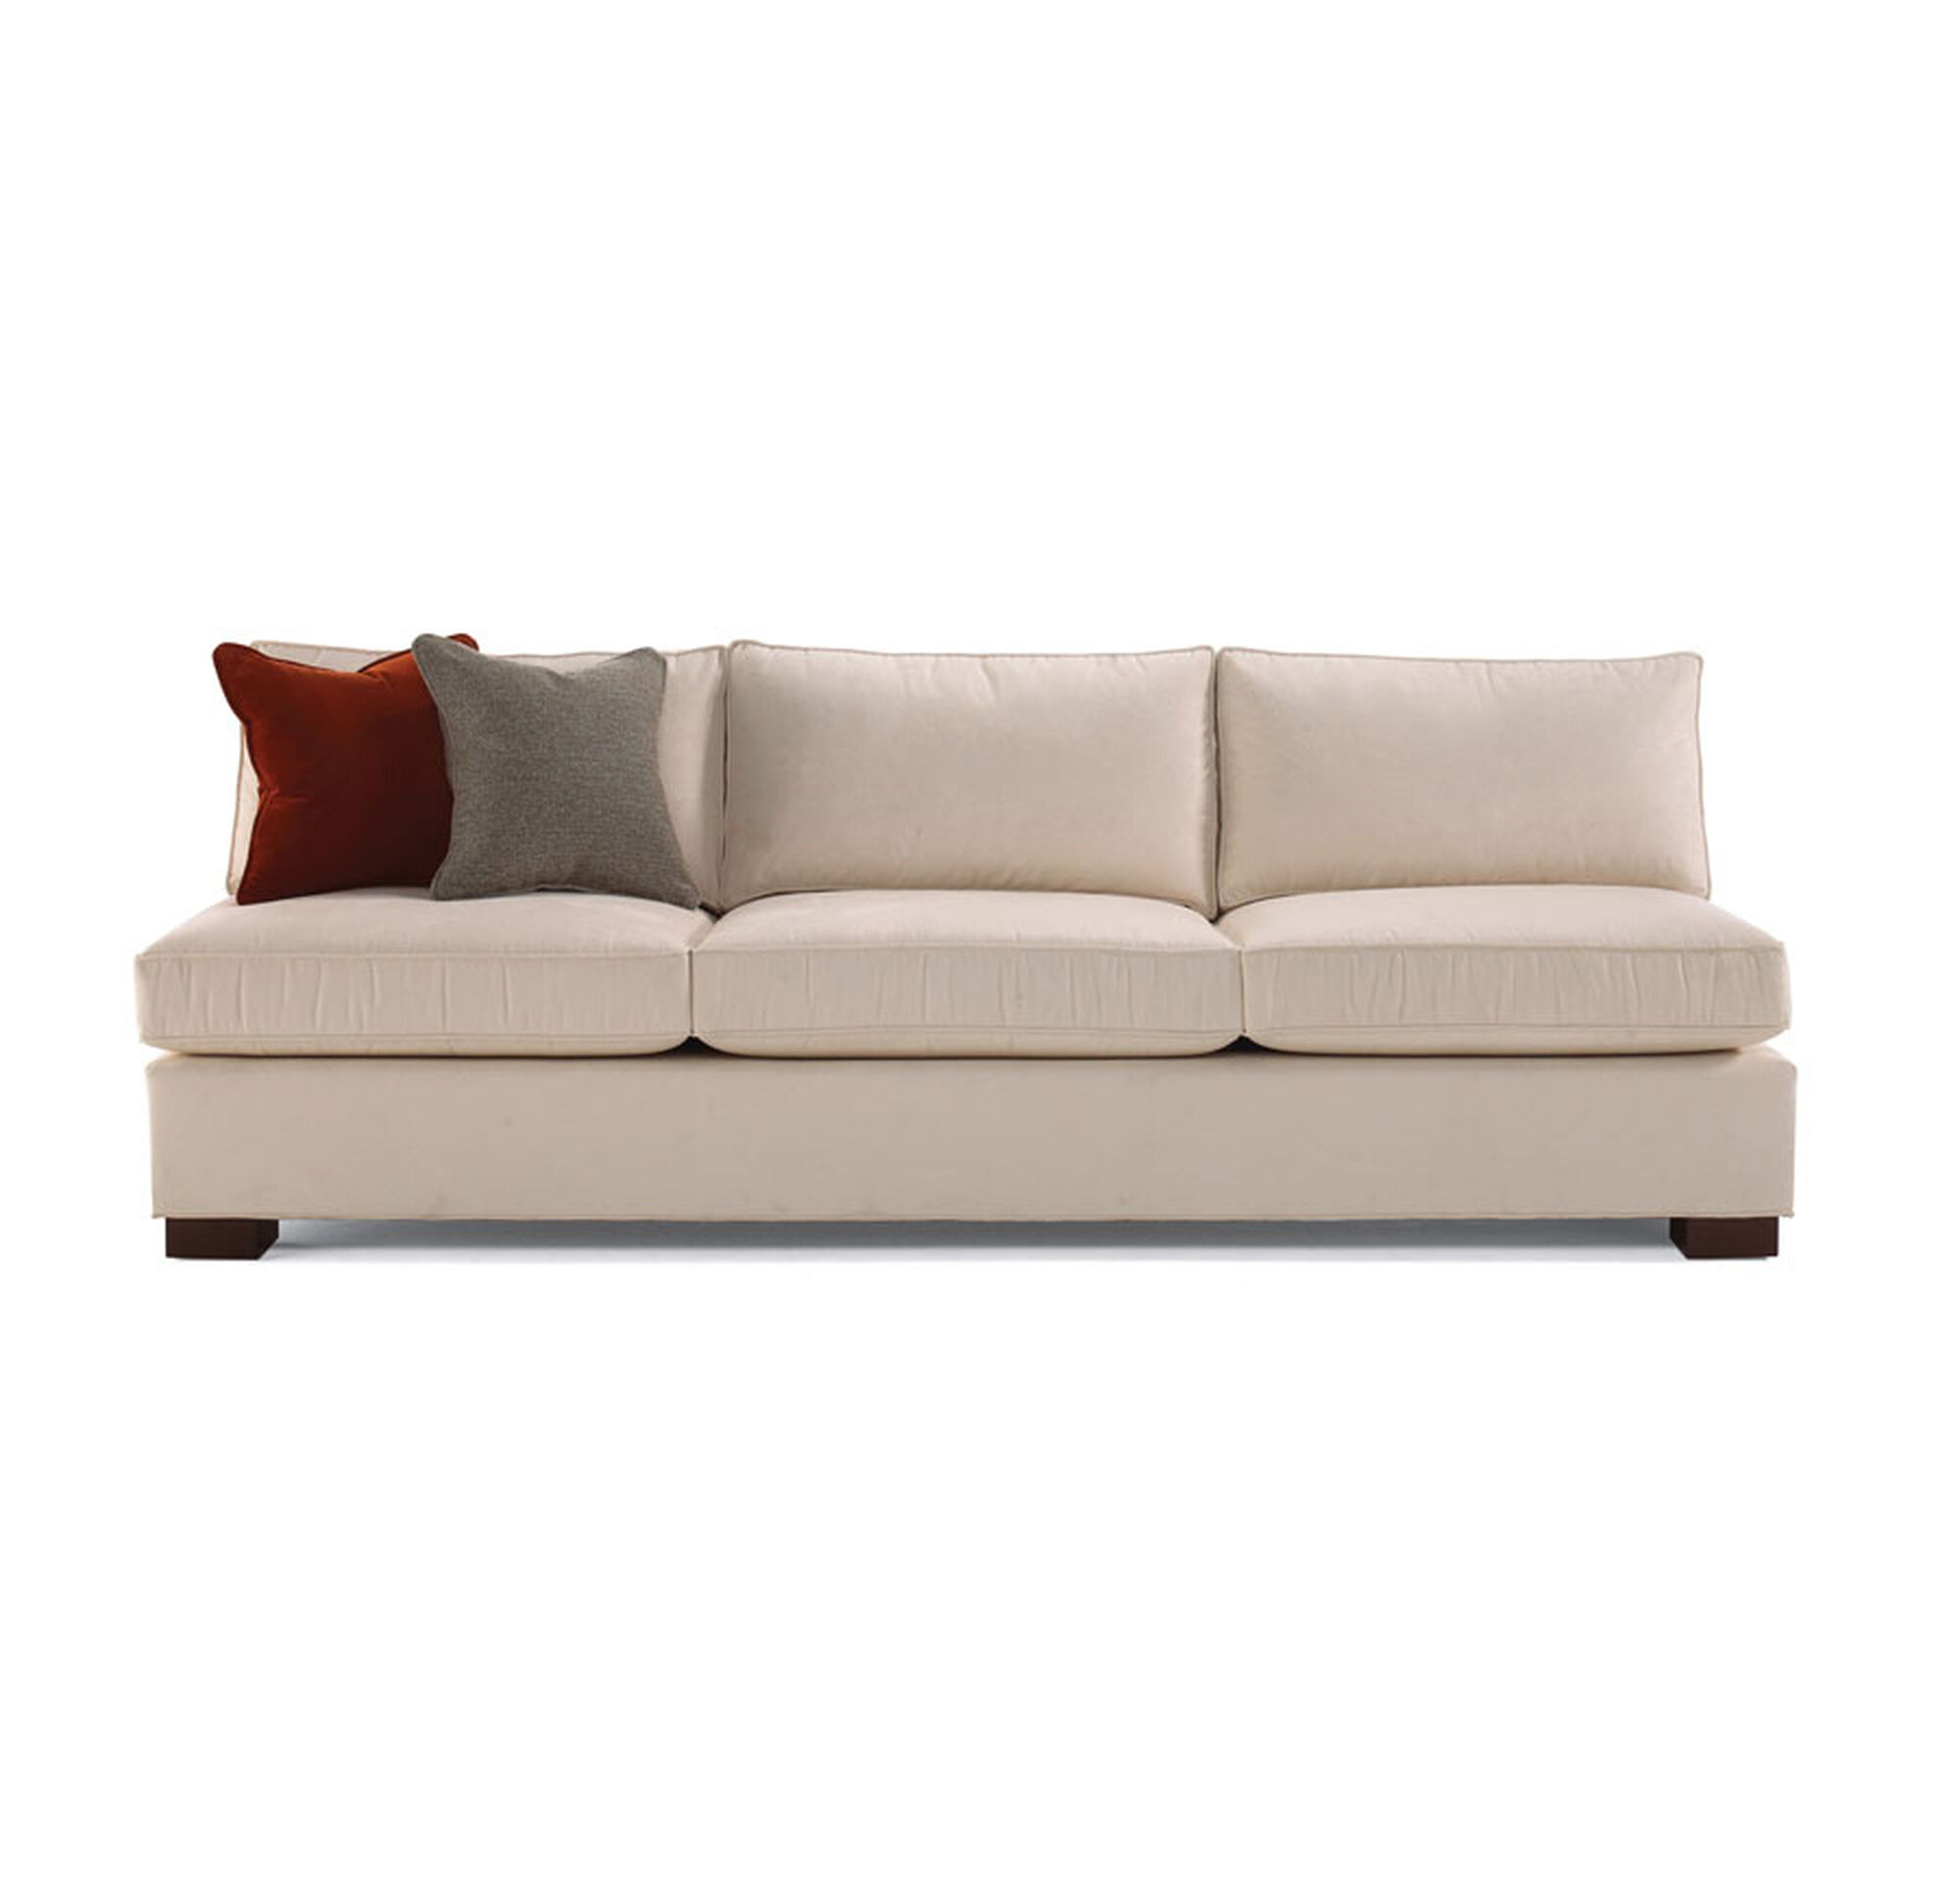 armless beach furniture lifestyle urban couch nz lounge outdoor link sofa